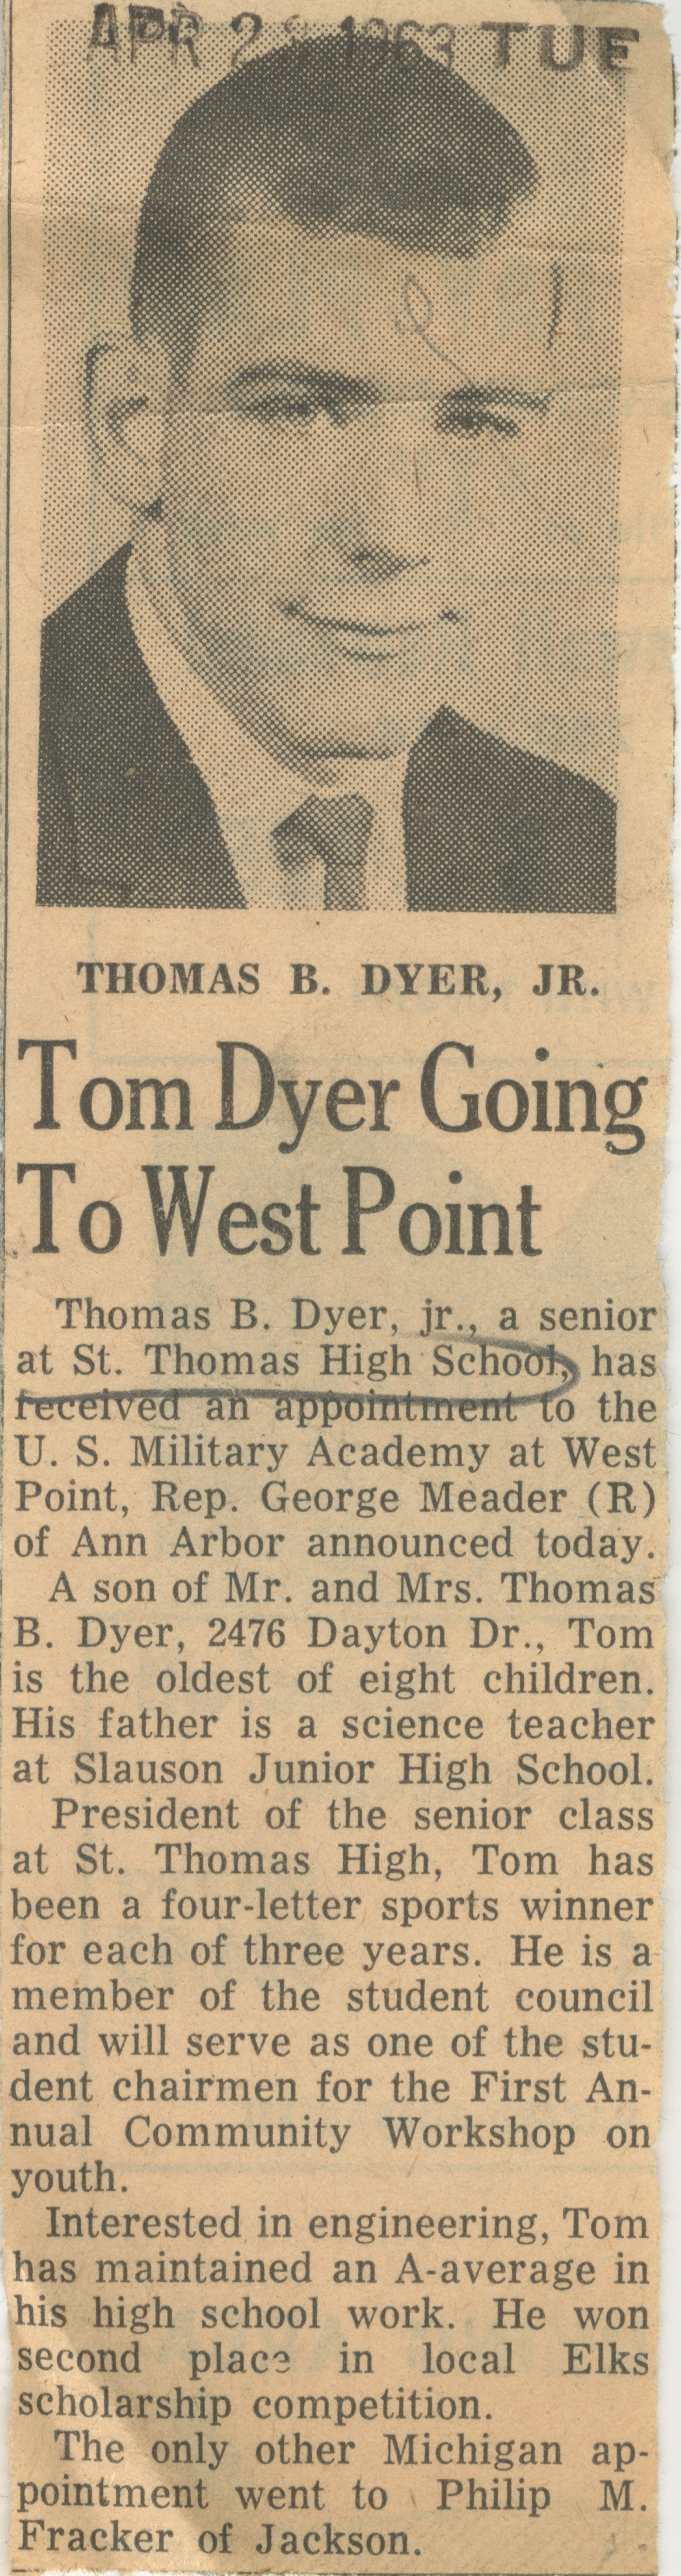 Tom Dyer Going To West Point image